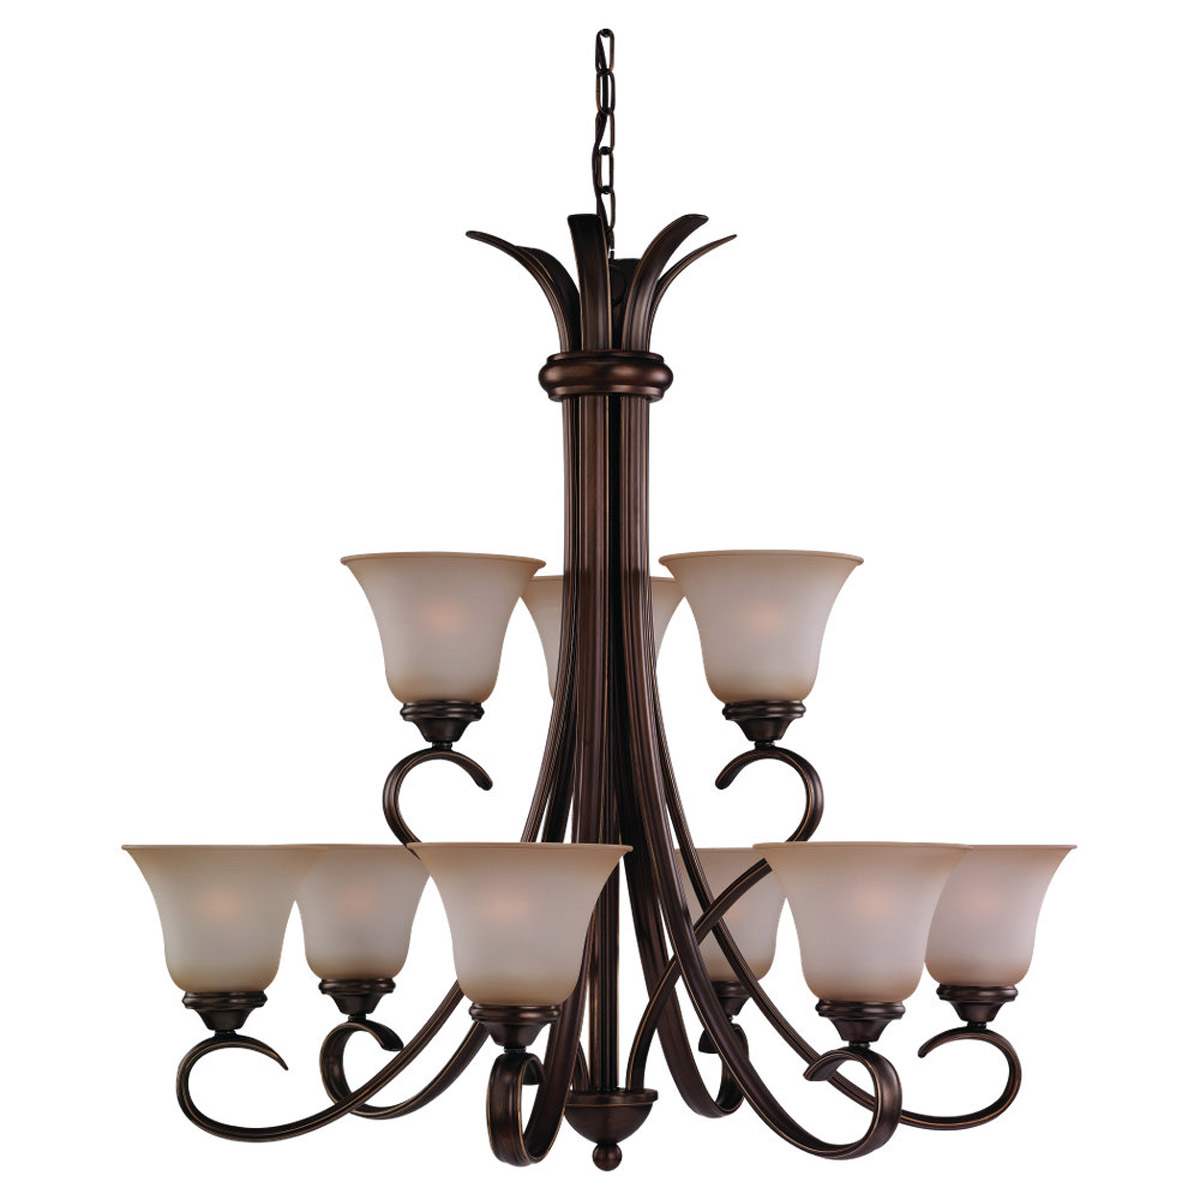 Sea Gull 31362-829 Rialto 9 Light 32 inch Russet Bronze Chandelier Ceiling Light in Ginger Glass photo